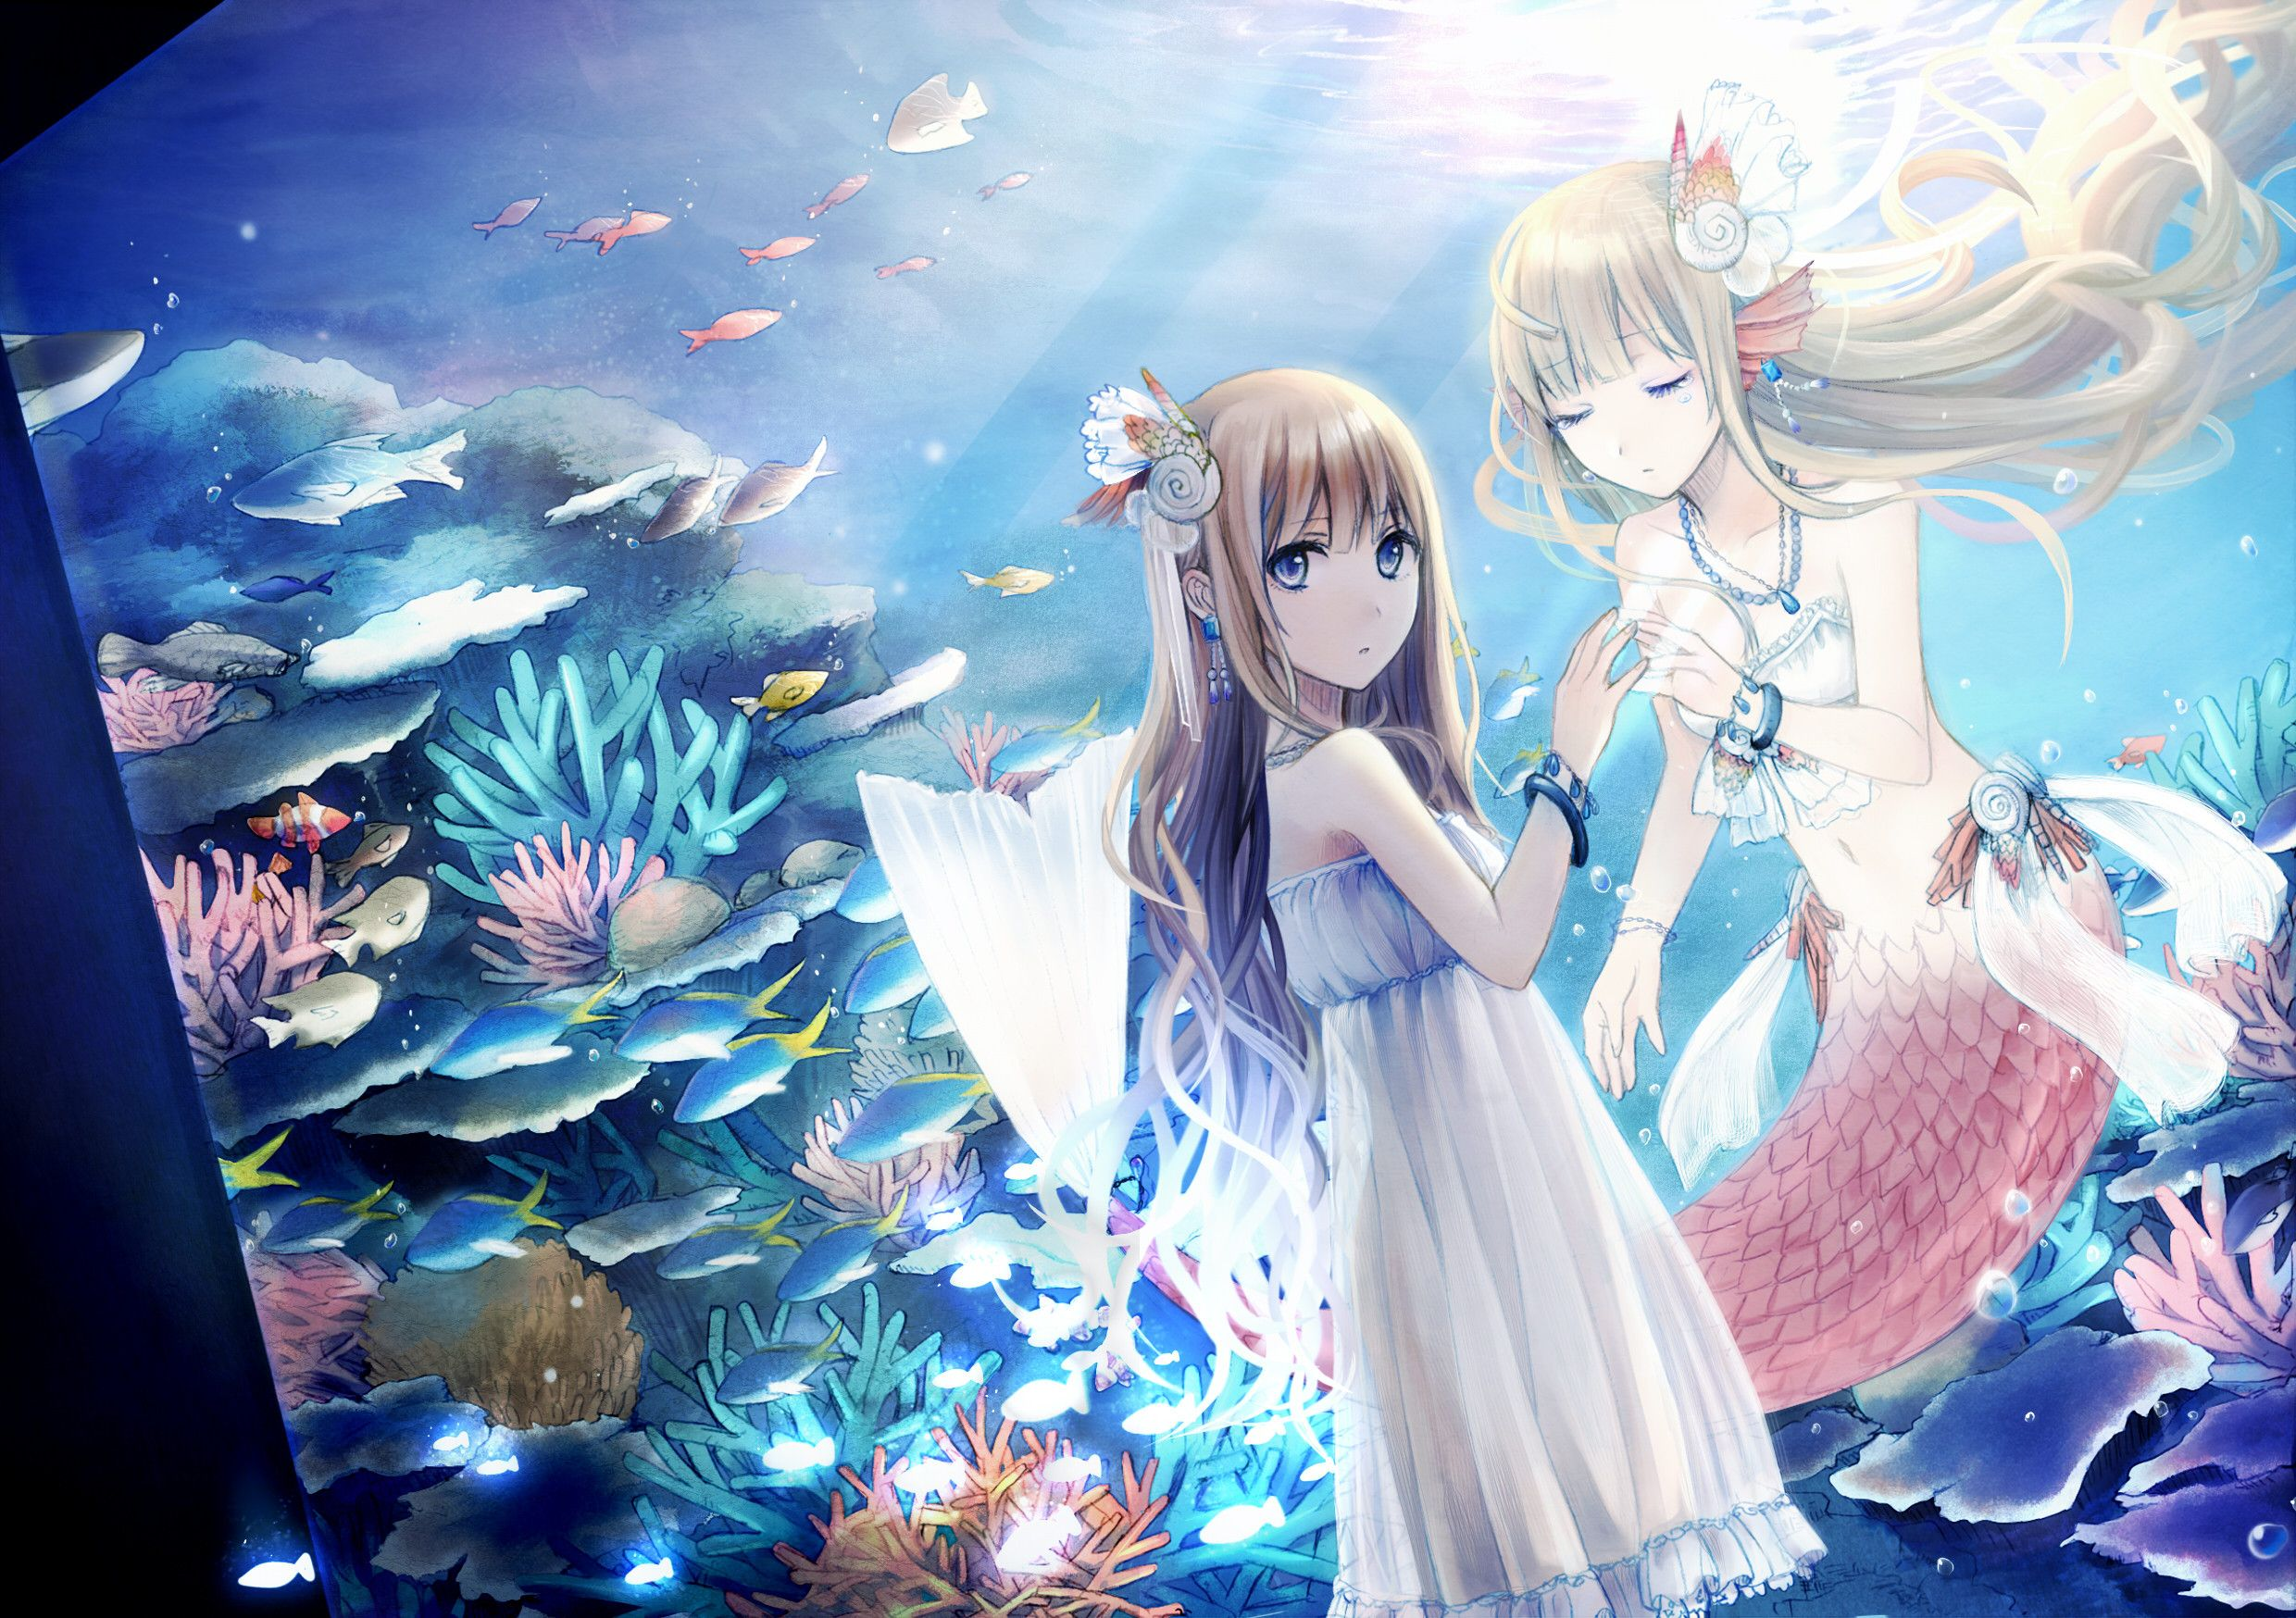 How sweet anime mermaid girl and her